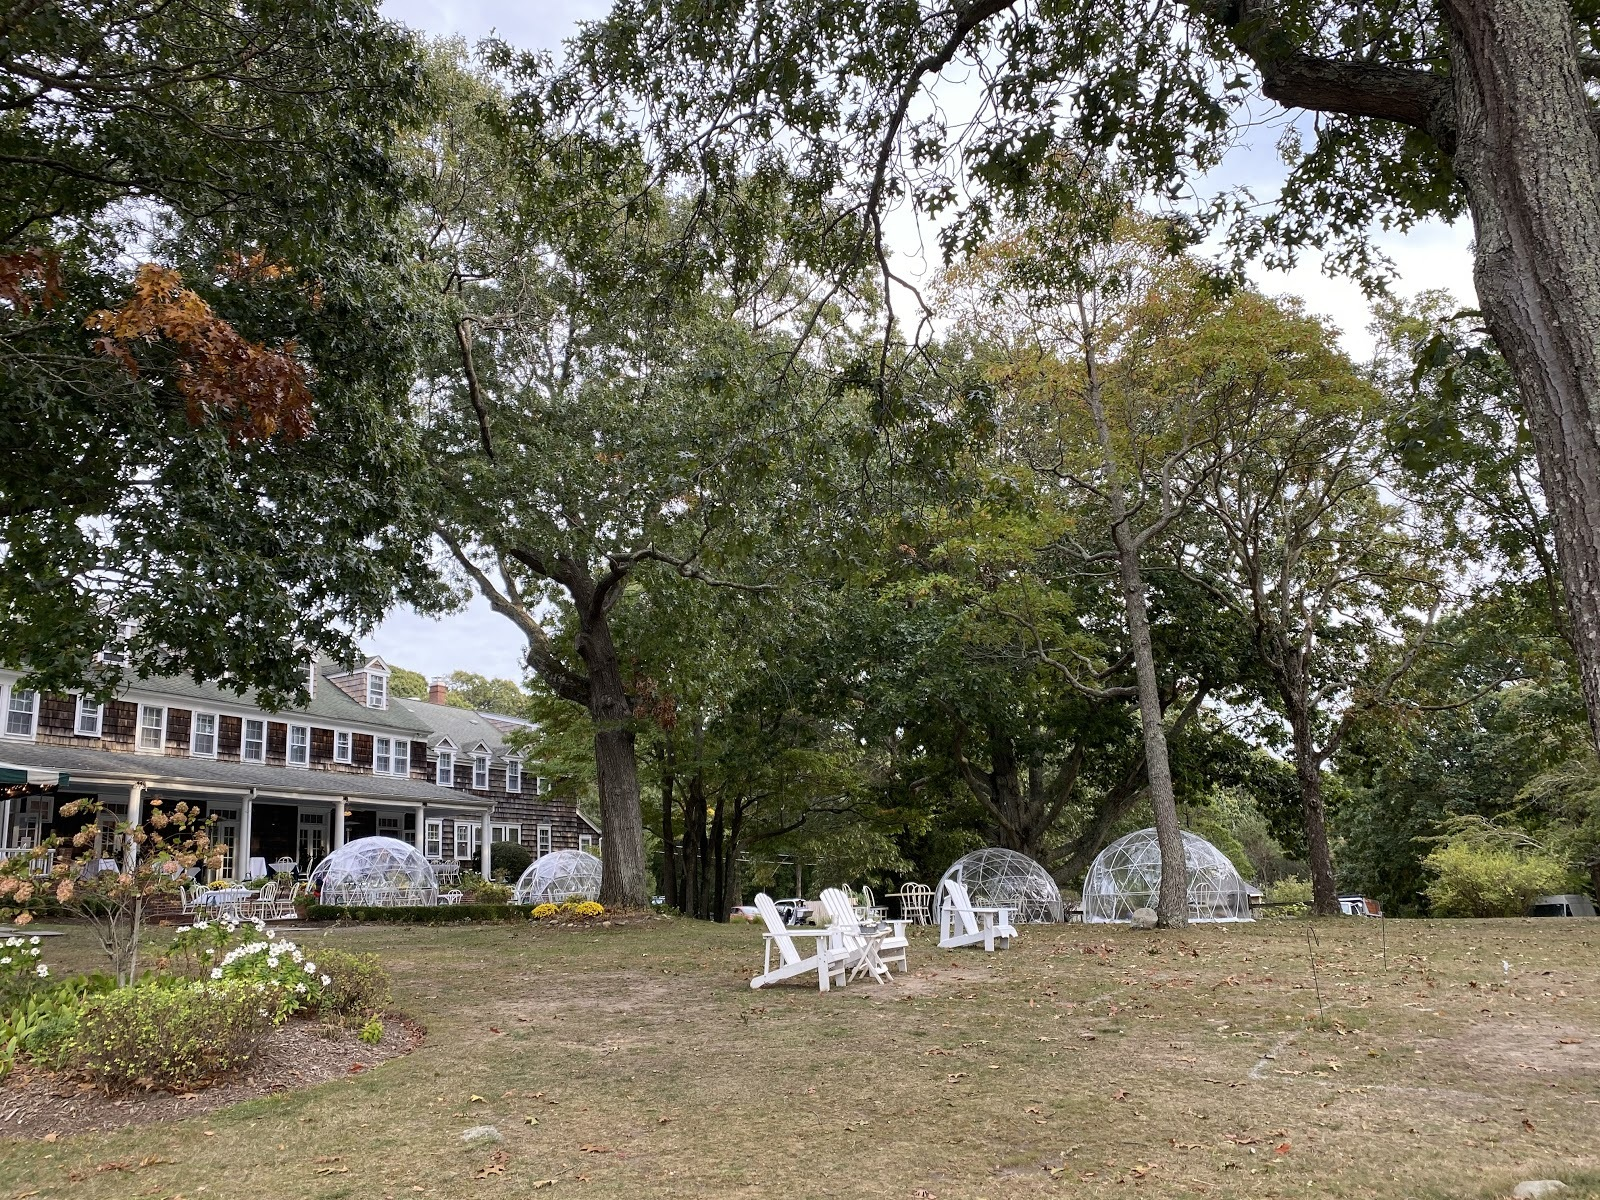 The Rams Head Inn on Shelter Island is offering heated igloos during the fall and winter seasons.